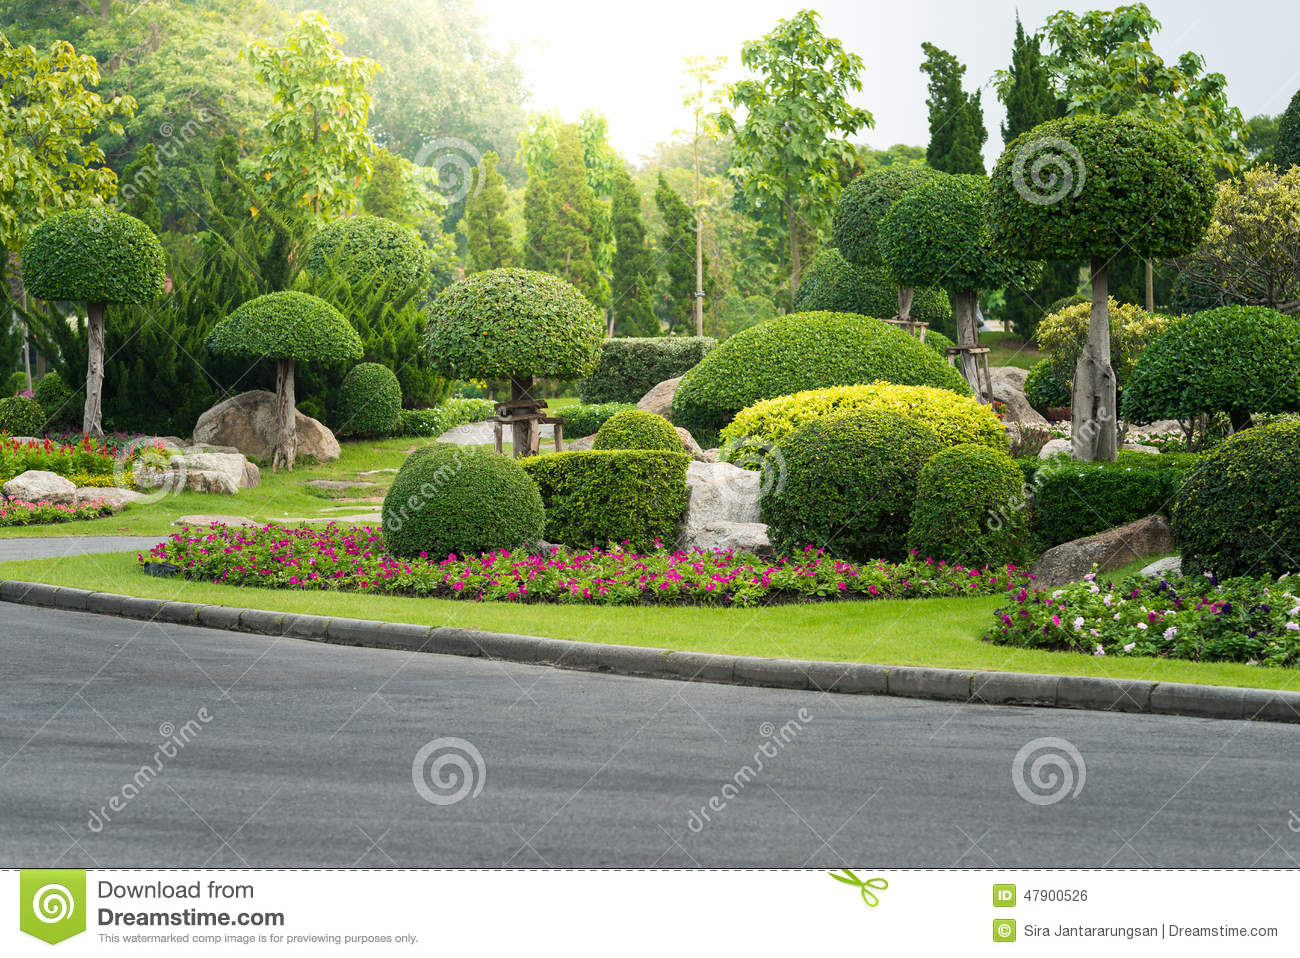 Gardening And Landscaping With Decorative Trees Stock Photo - Image ...